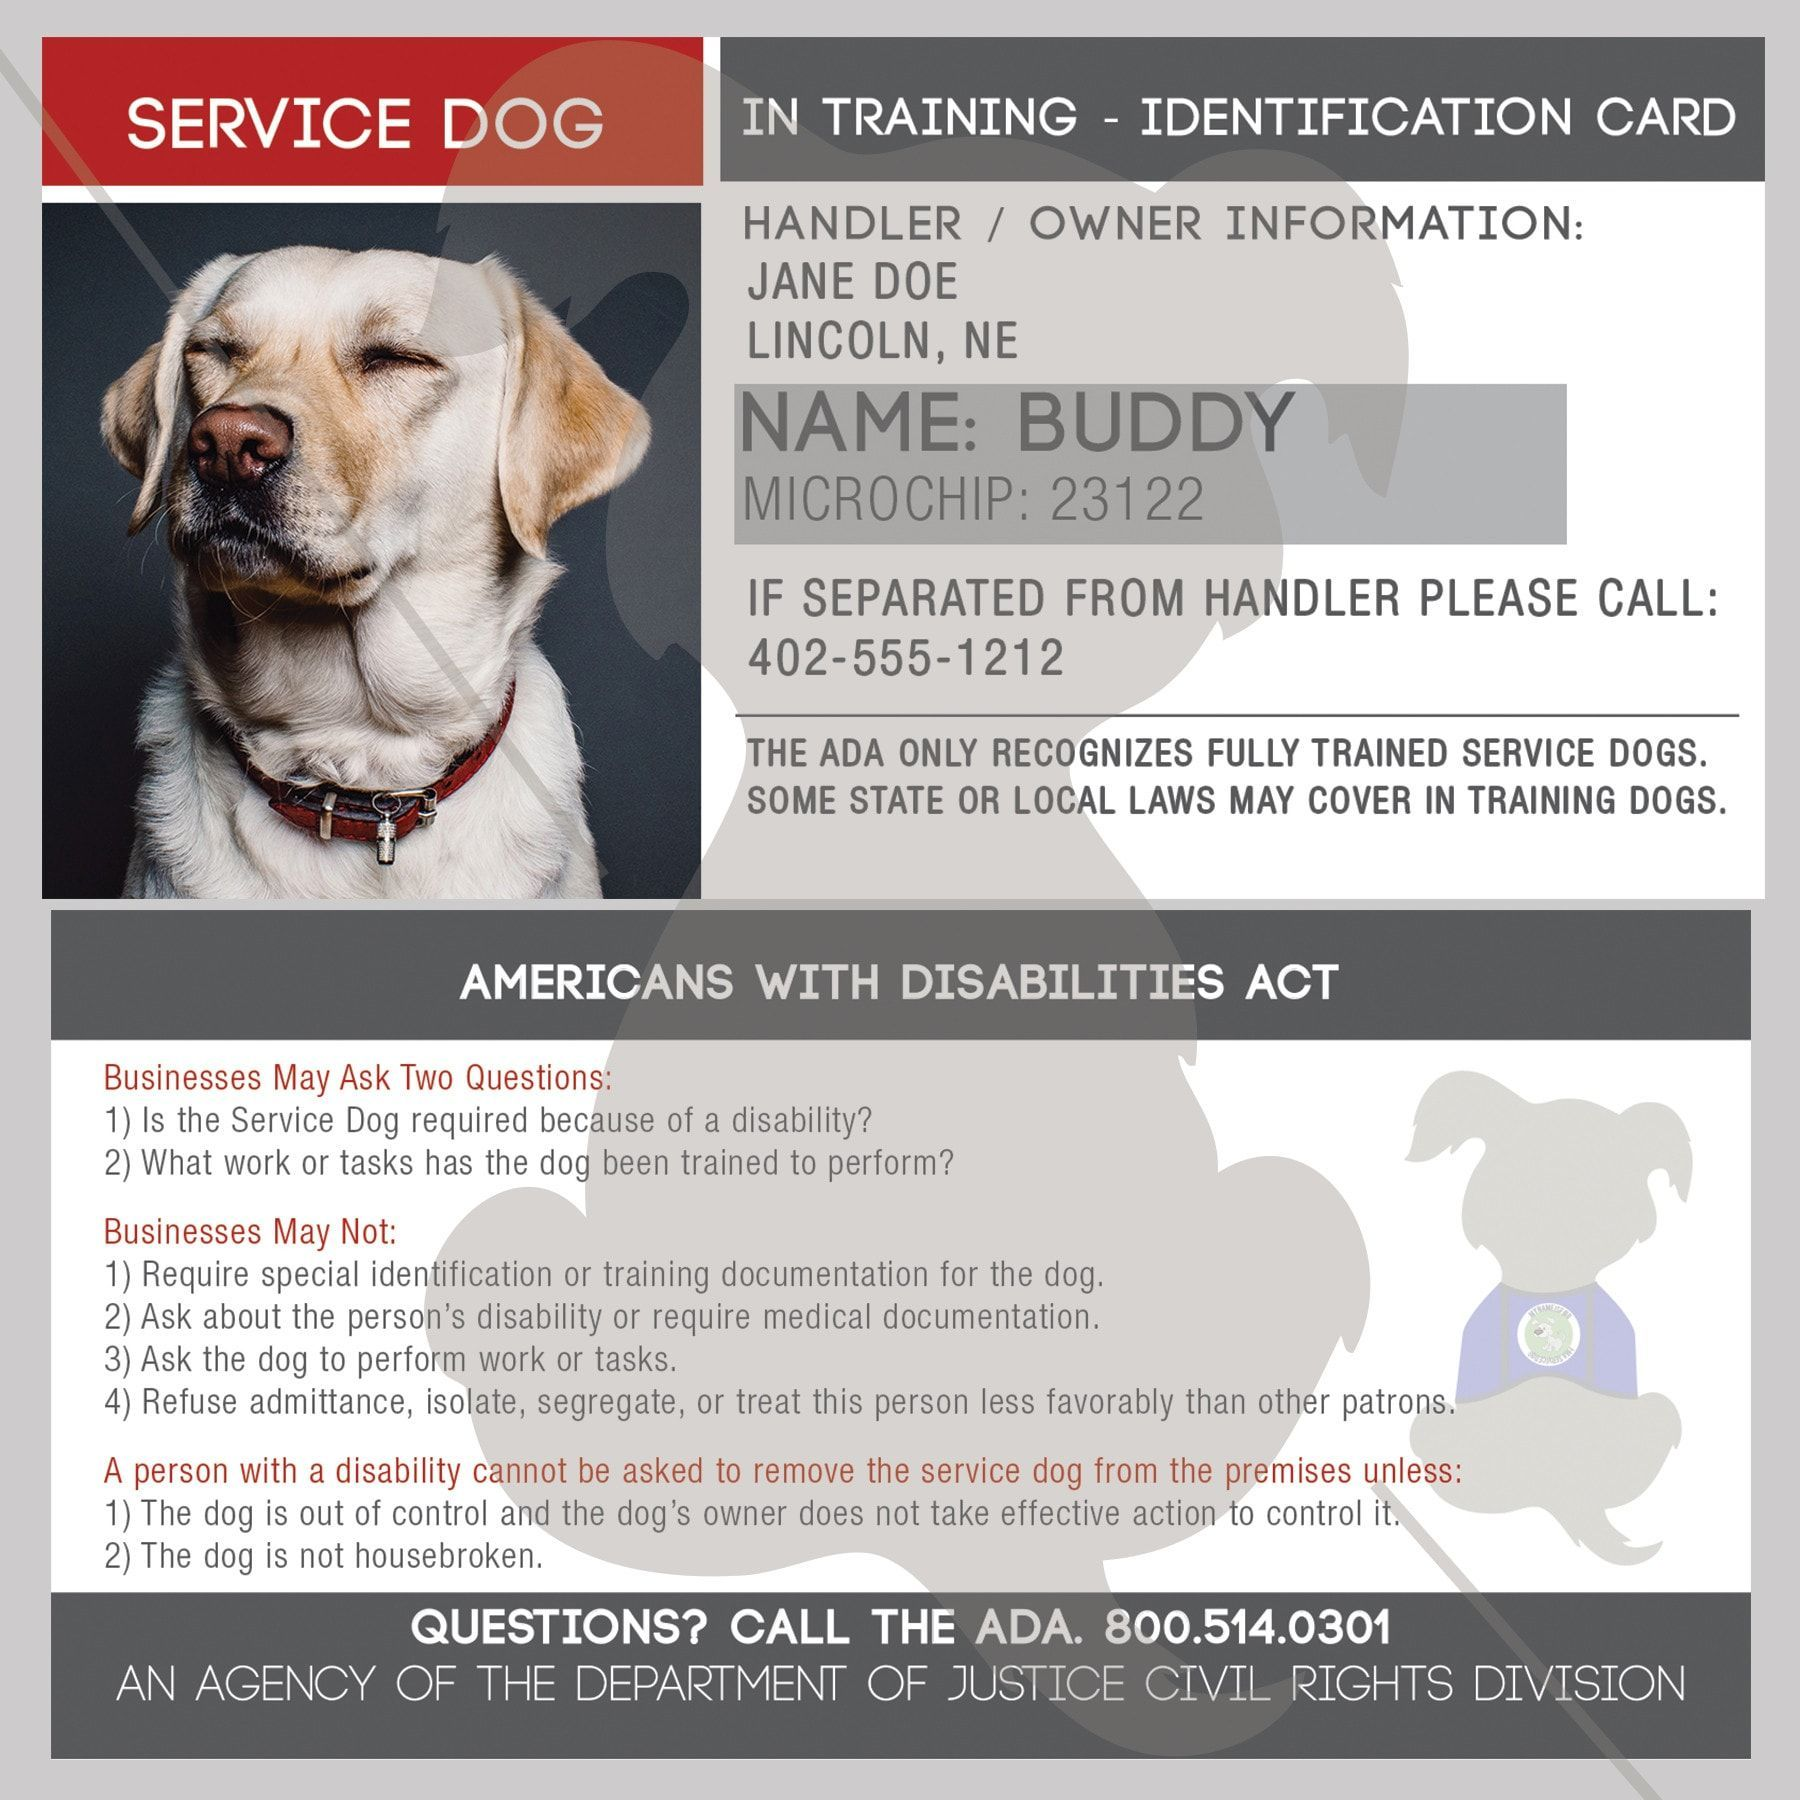 Id Card Service Dog In Training Therapy Dogs Emotional